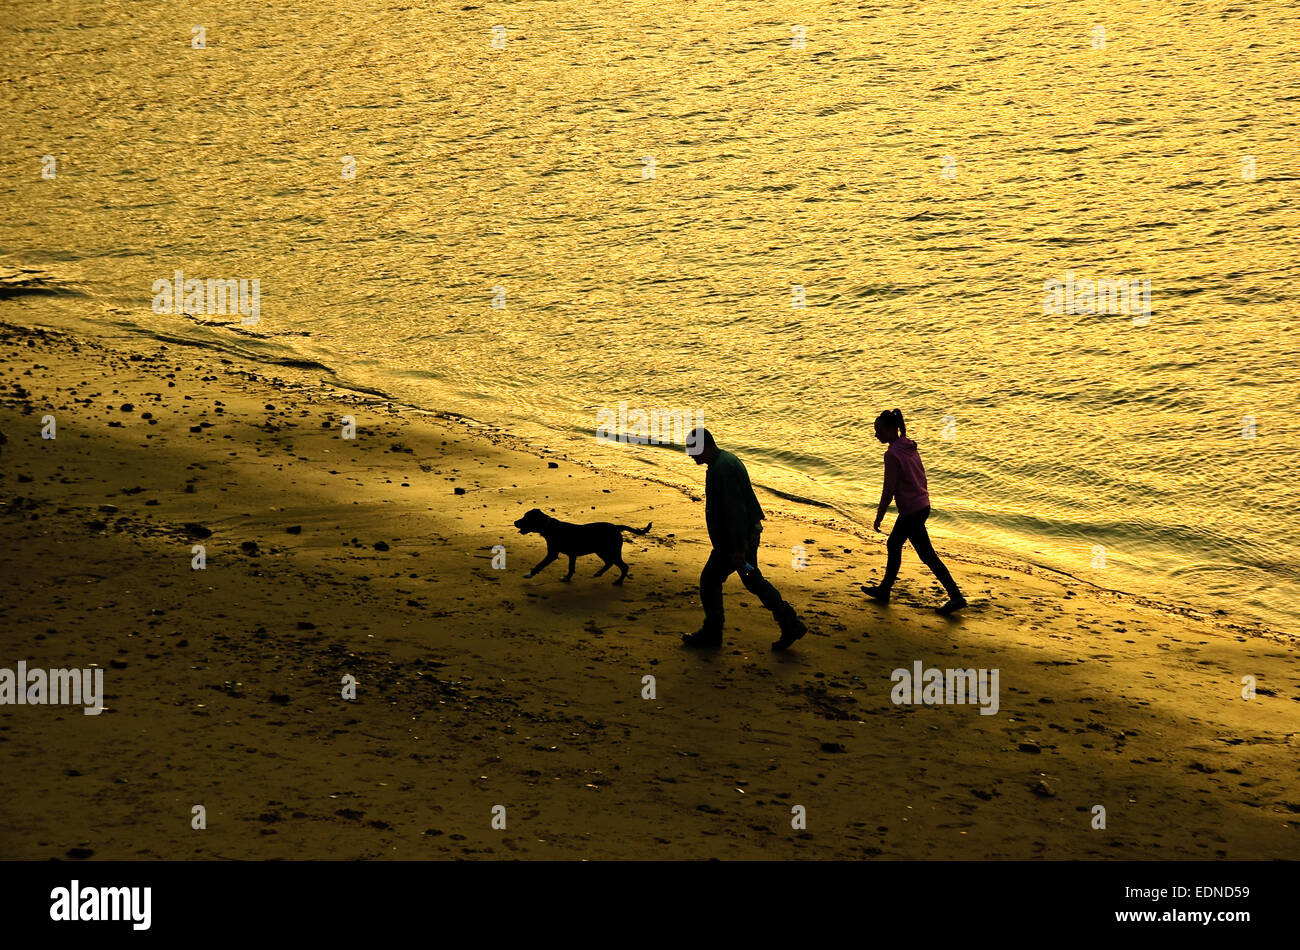 Two persons and dog walking on beach along water at sunset. - Stock Image